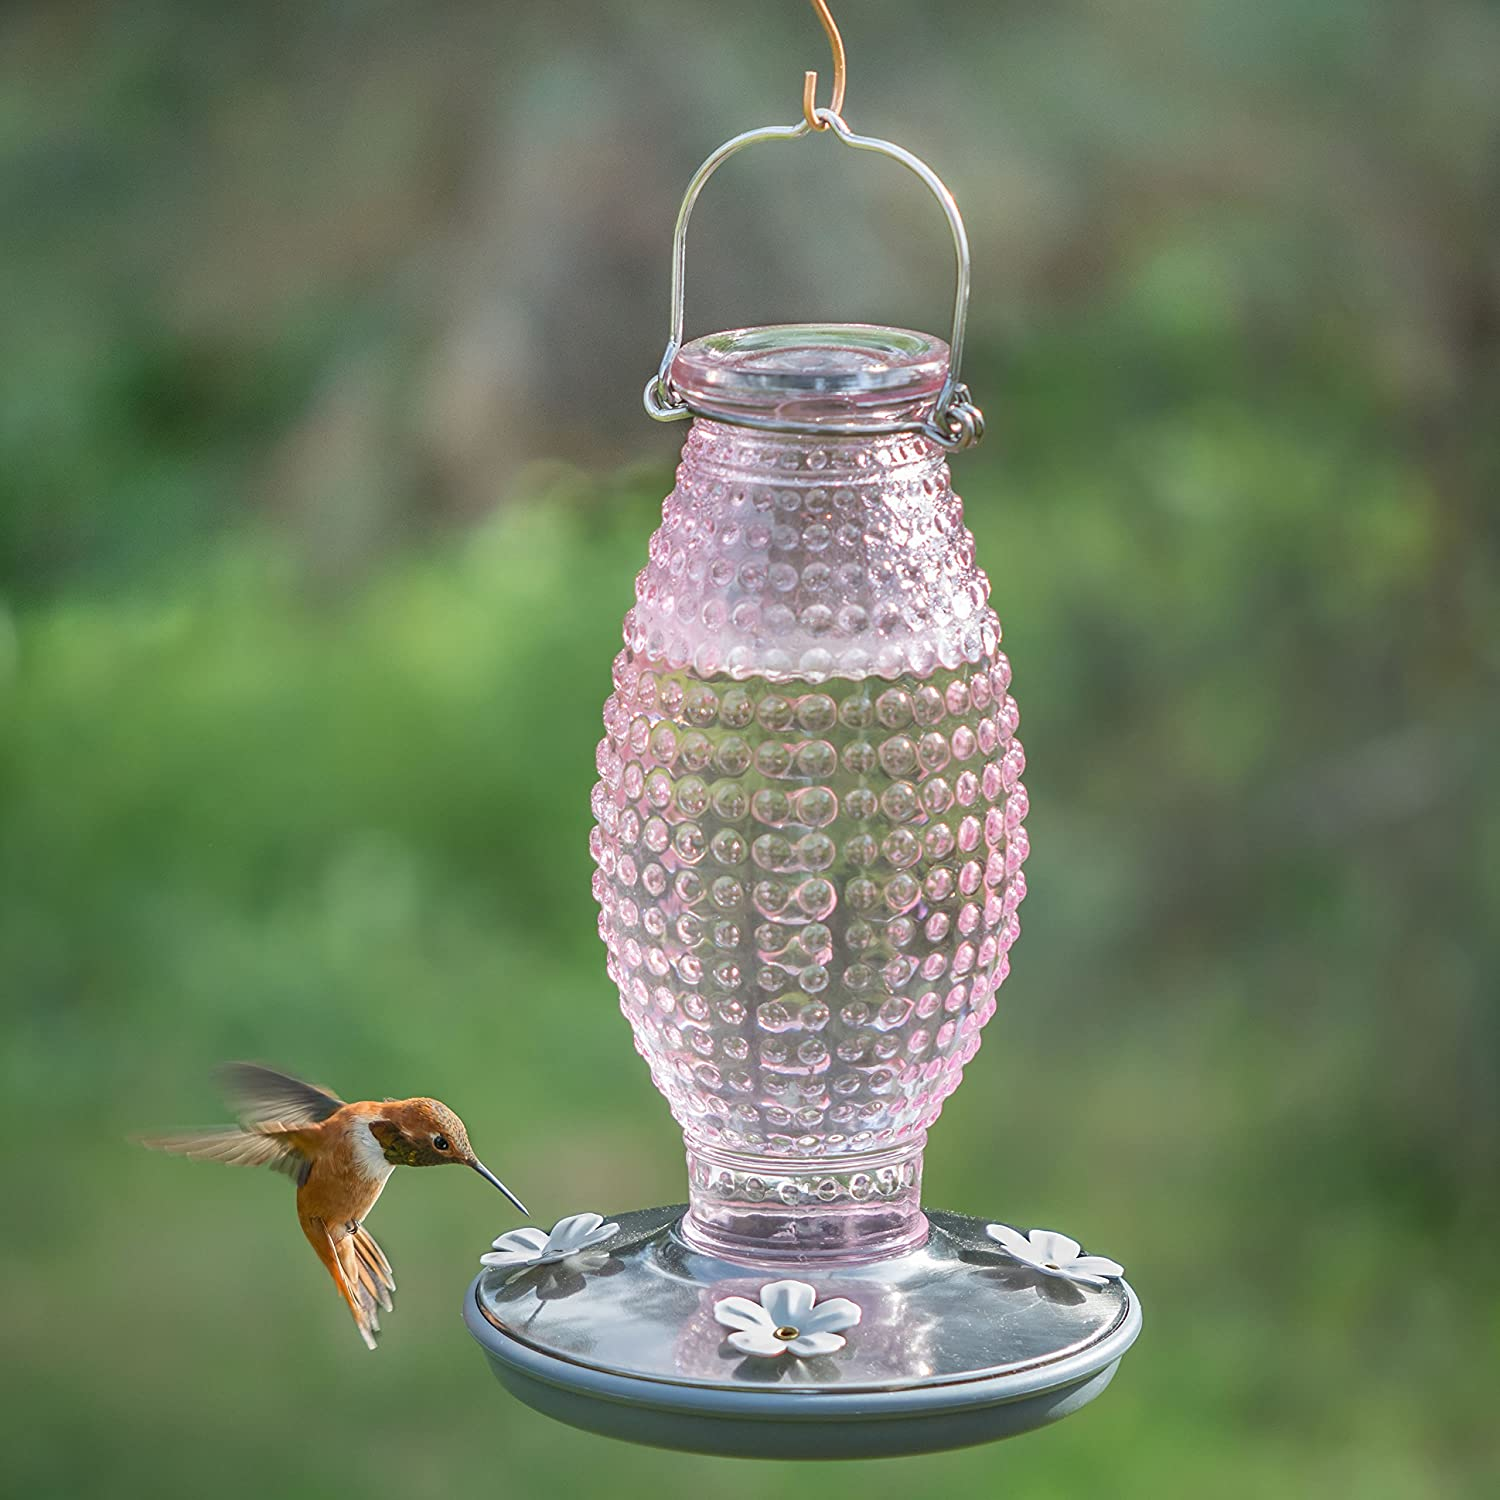 hummingbird com perkypet pet model feeders sale for us feeder bf pinch perky glass waist